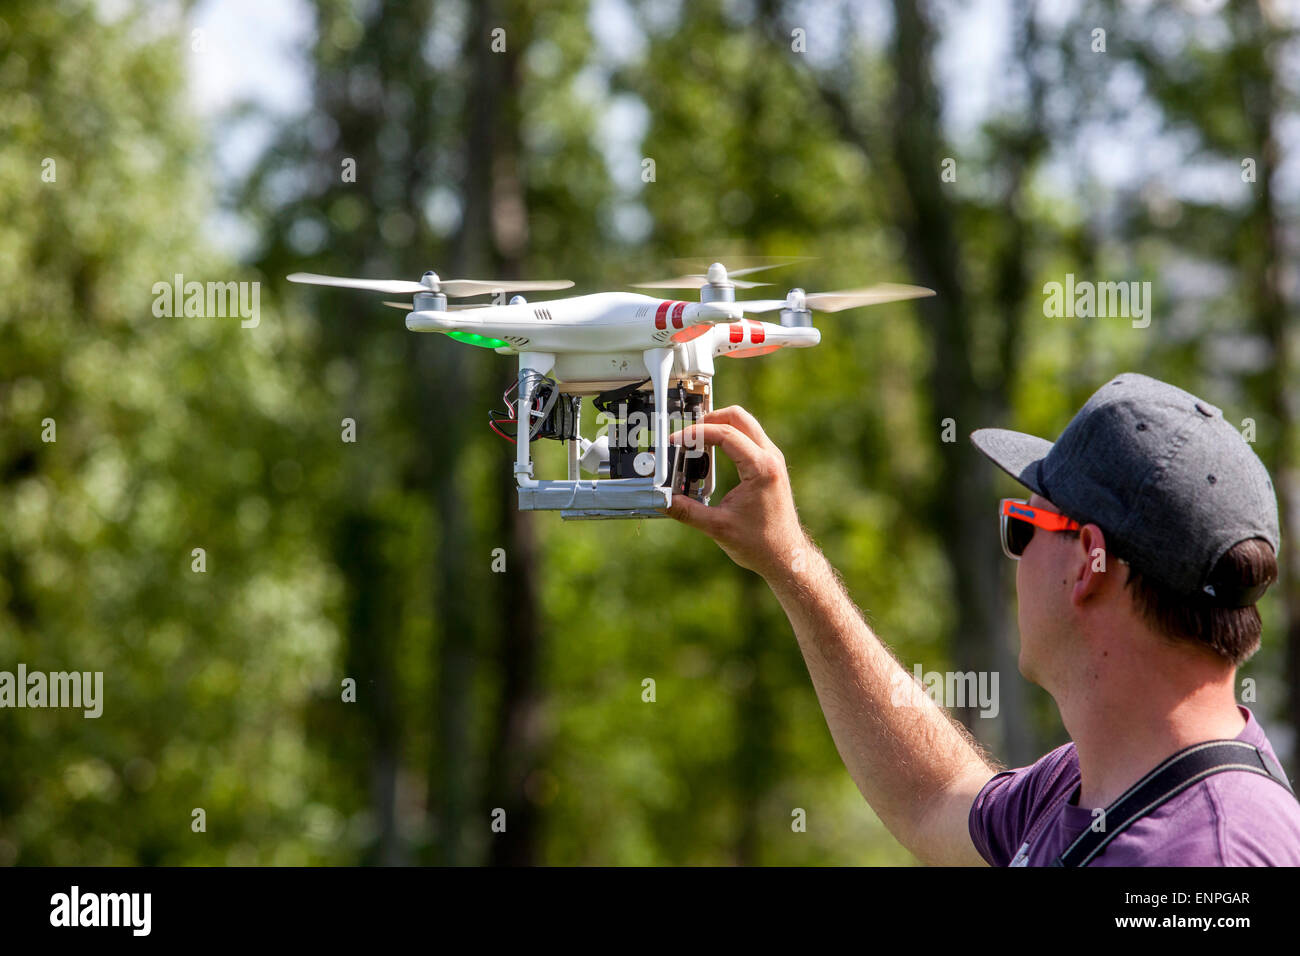 Man with drone Prague Czech Republic Europe - Stock Image